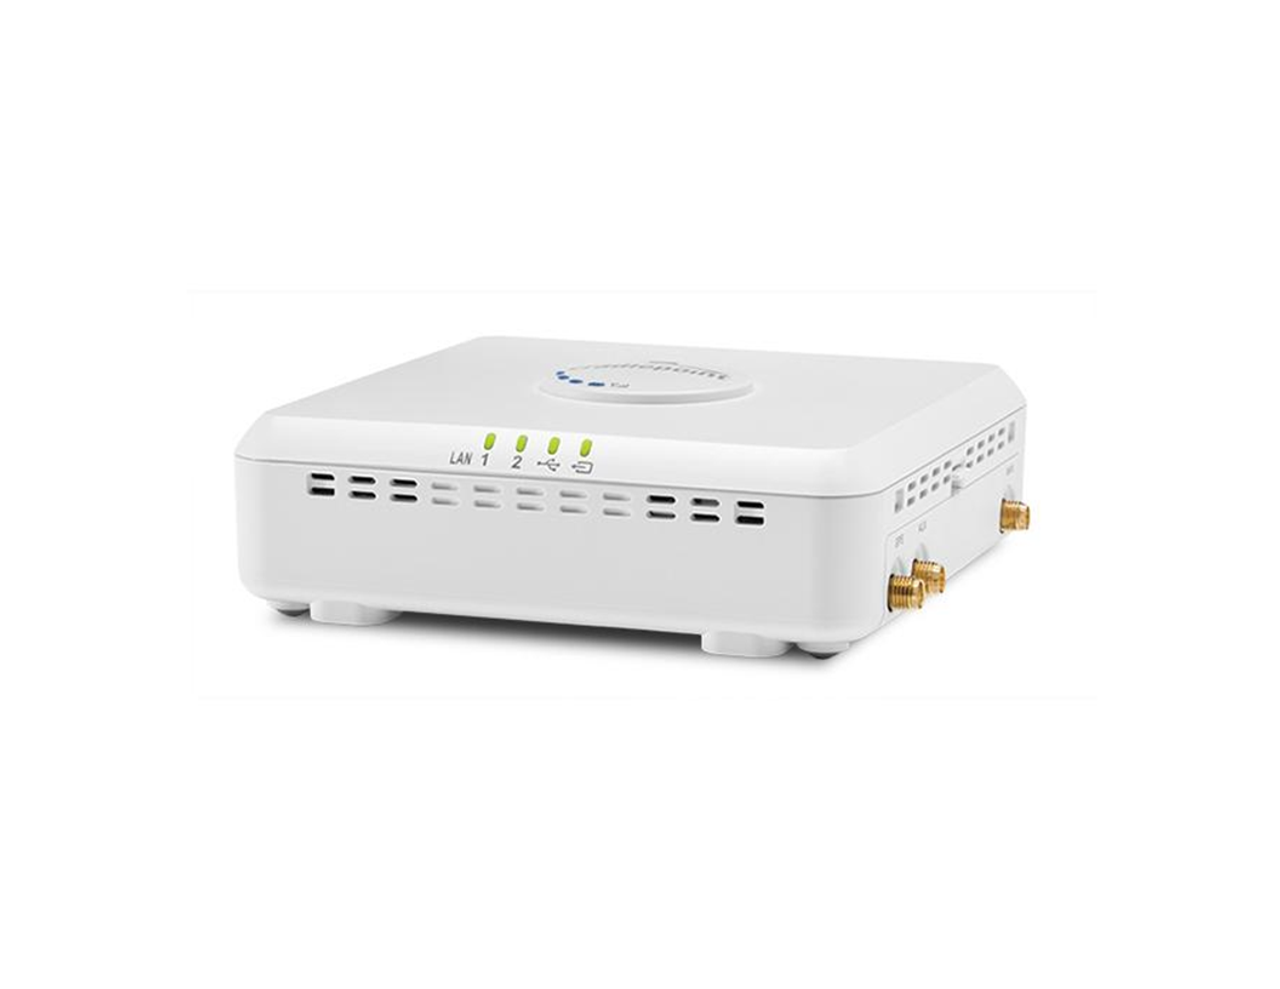 Cradlepoint CBA850 Router - Branch Networking / Failover w/ 1 Year Netcloud Essentials